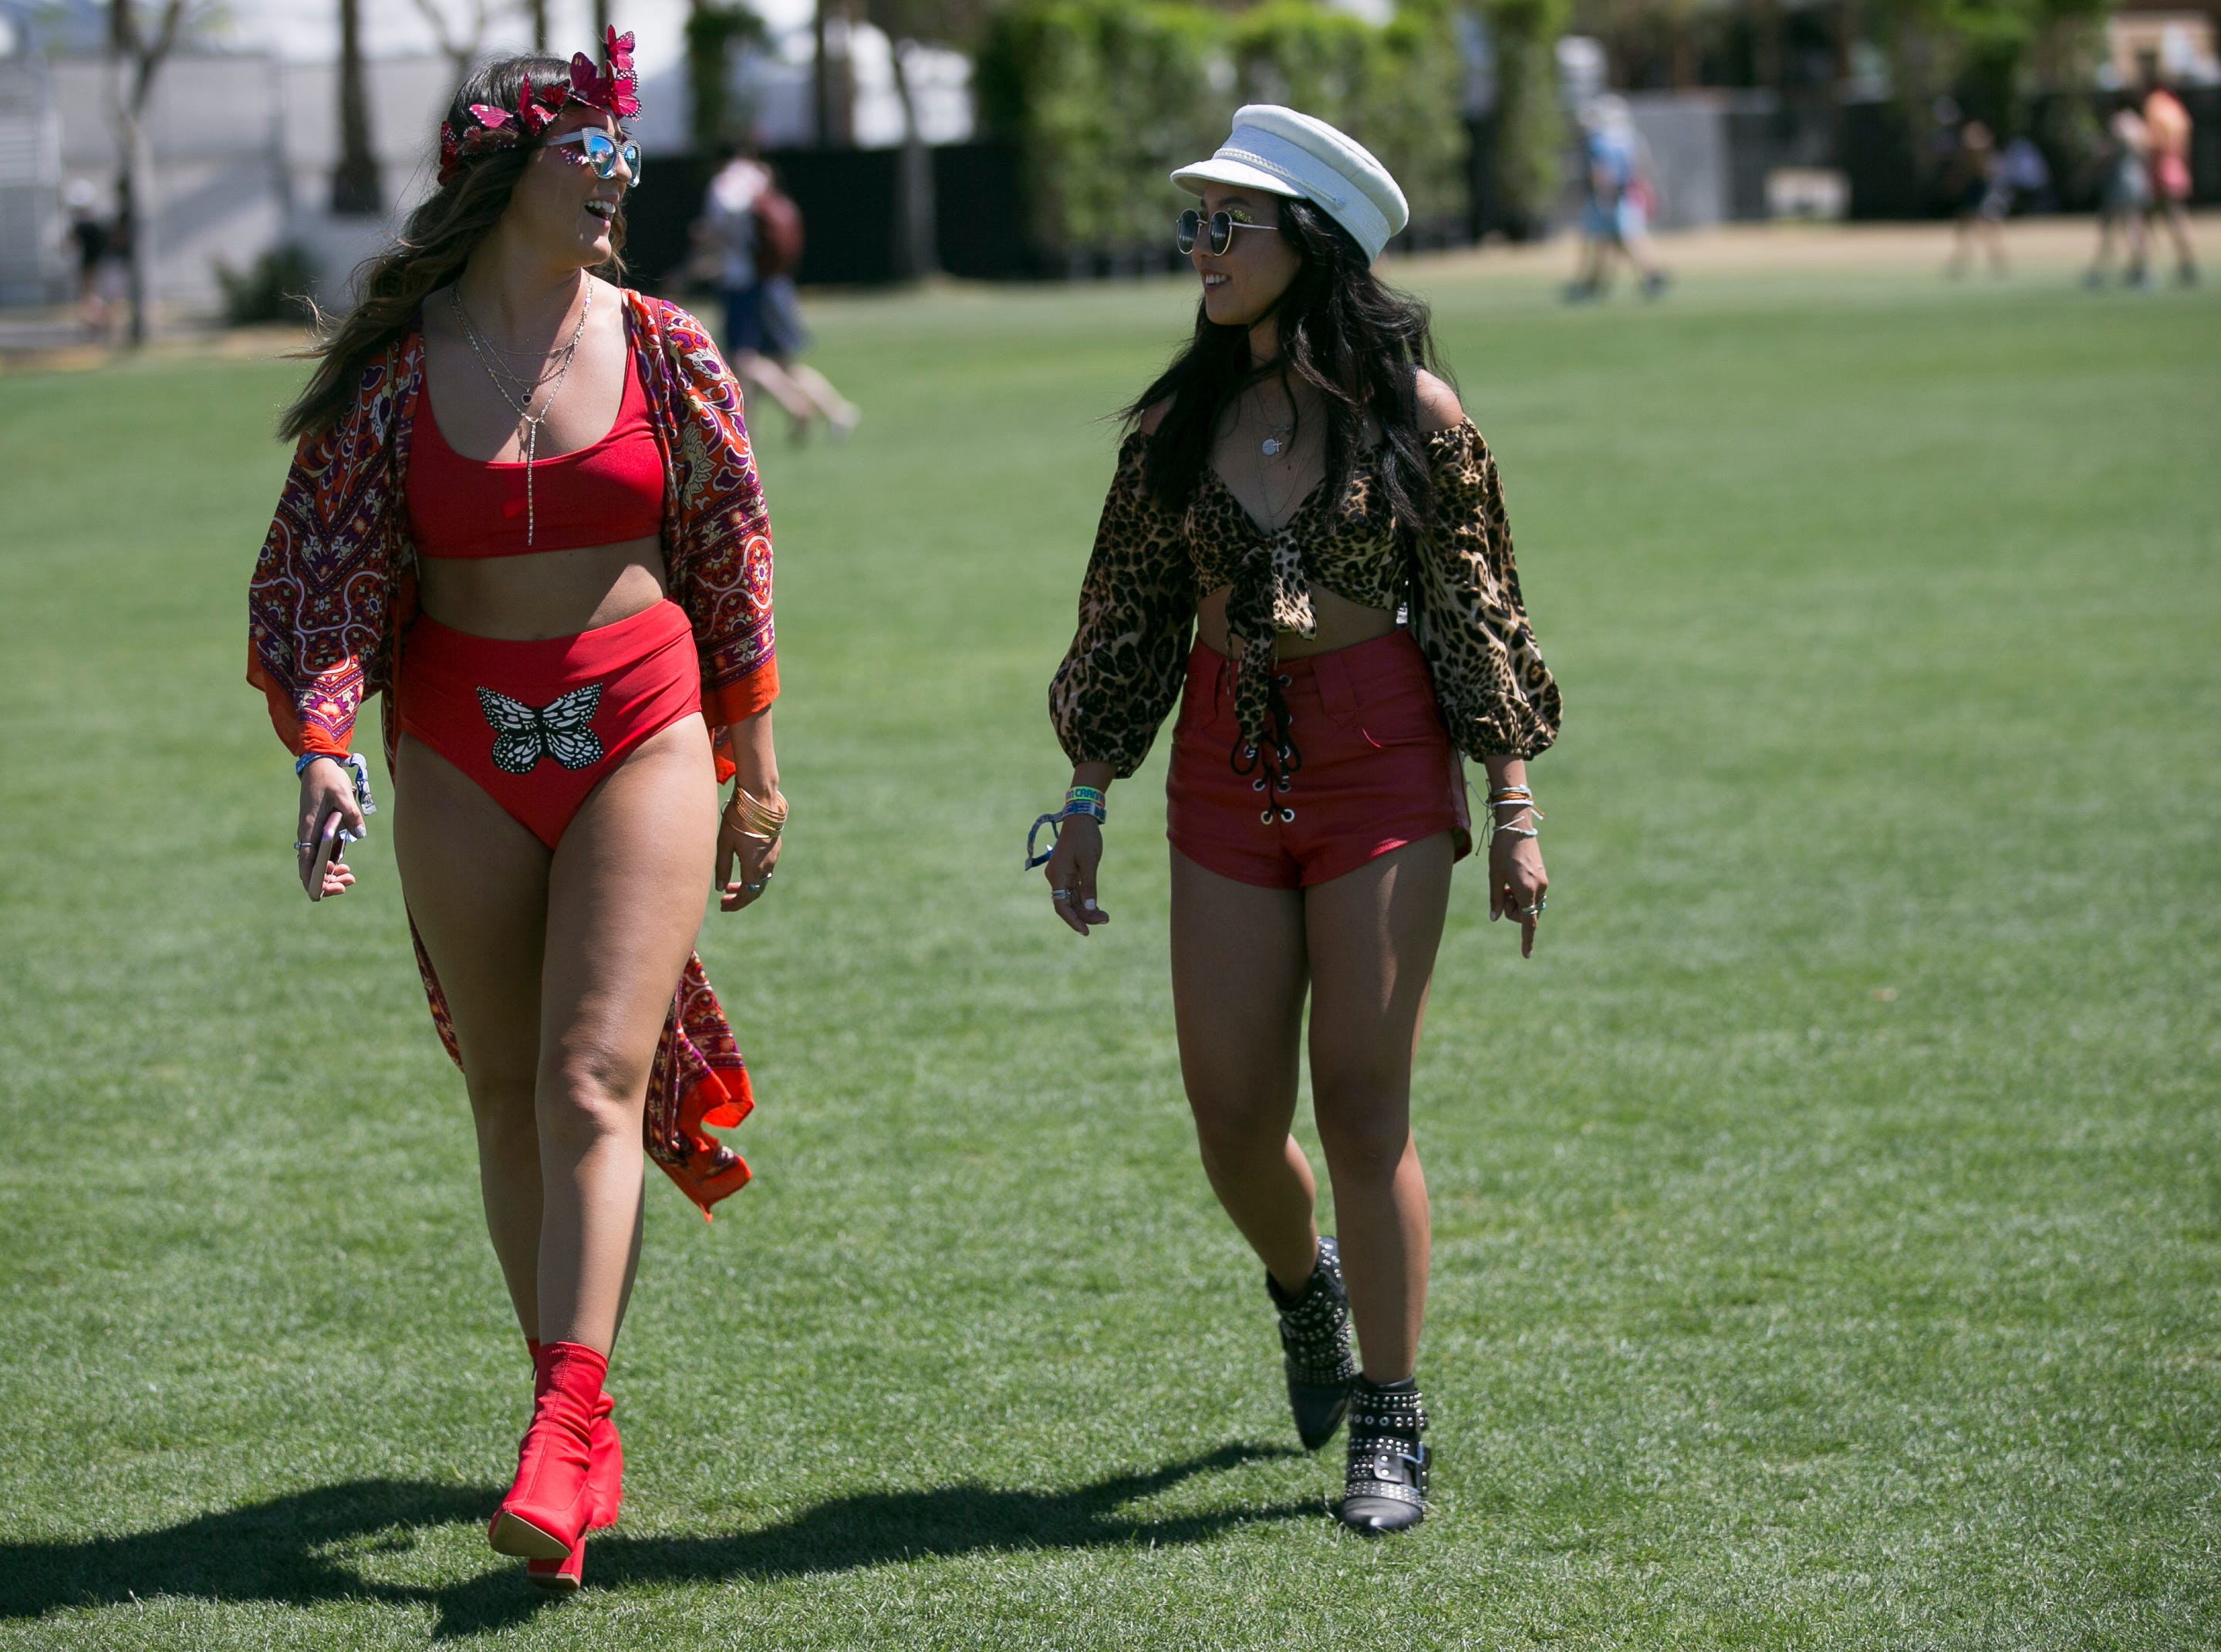 Ashley Prybycien (left) and Cathie Rattanakone (right) walk through the festival grounds at Coachella 2019 in Indio, Calif. on Sat. April 13, 2019.